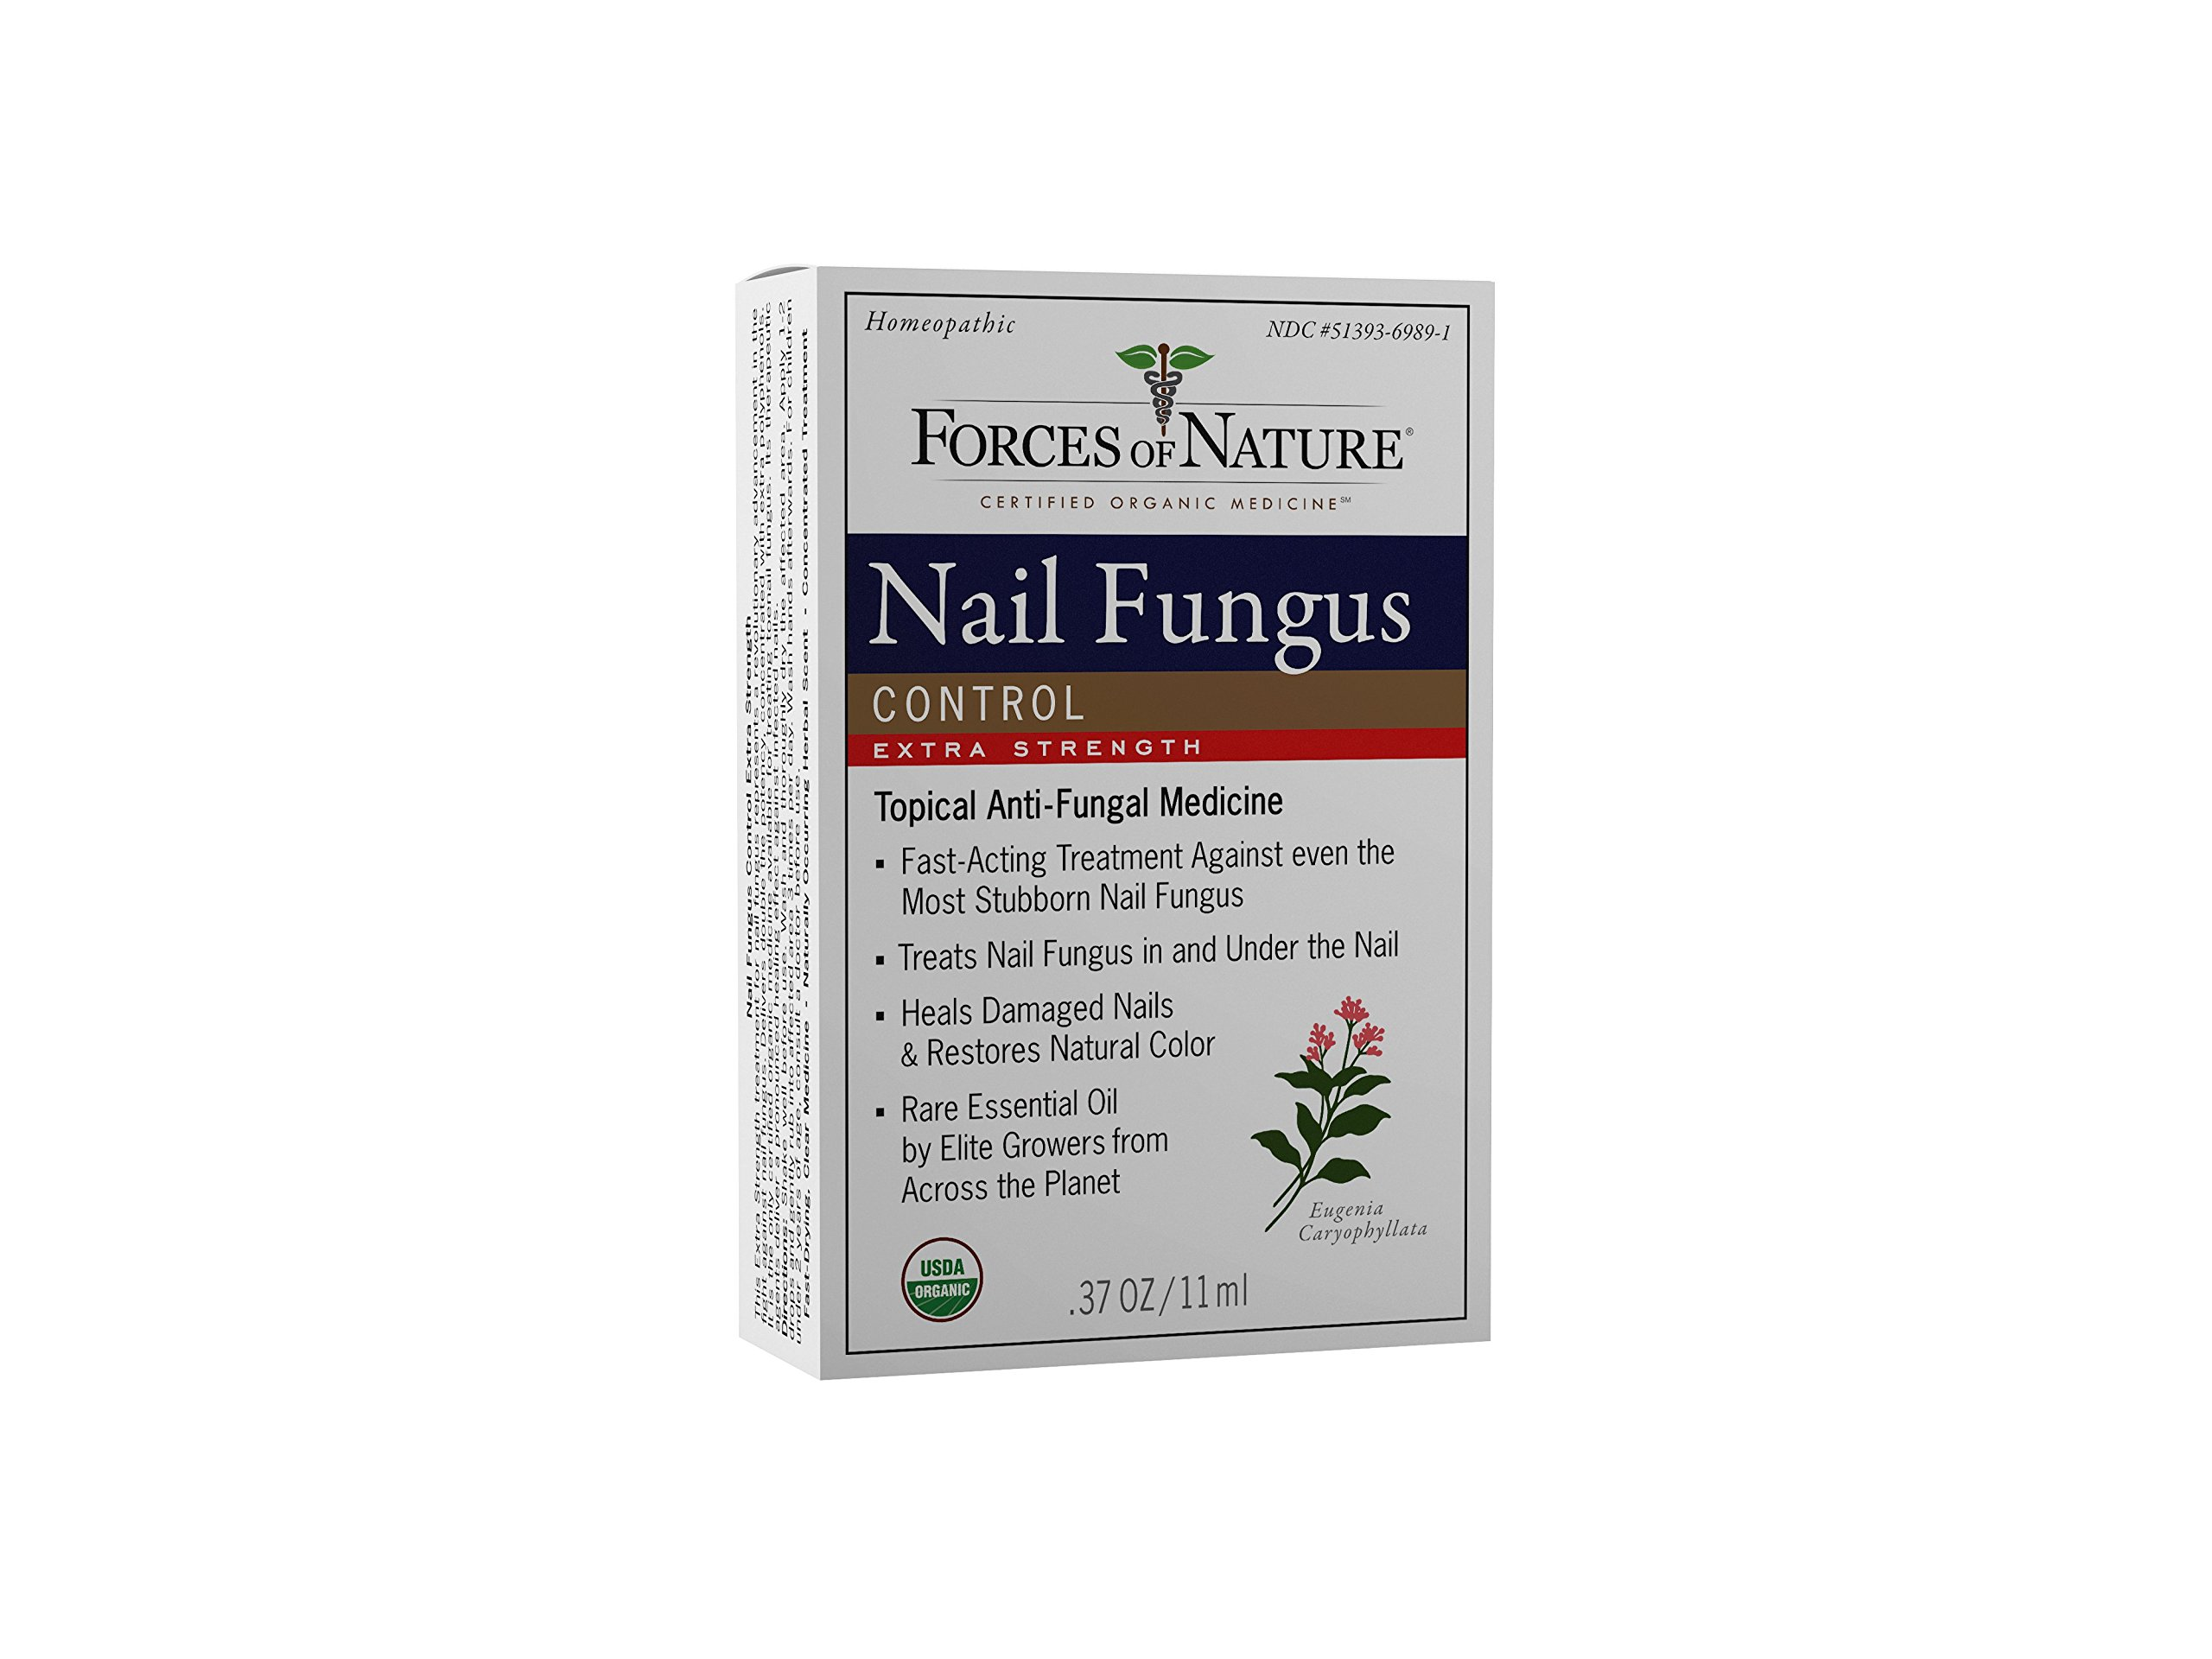 Forces of Nature -Natural, Organic Nail Fungus Extra Strength Treatment (11ml) Non GMO, No Harmful Chemicals -Fight Damaged, Cracked, Brittle, Discolored Yellow and black Toenails, Fingernails by Forces Of Nature